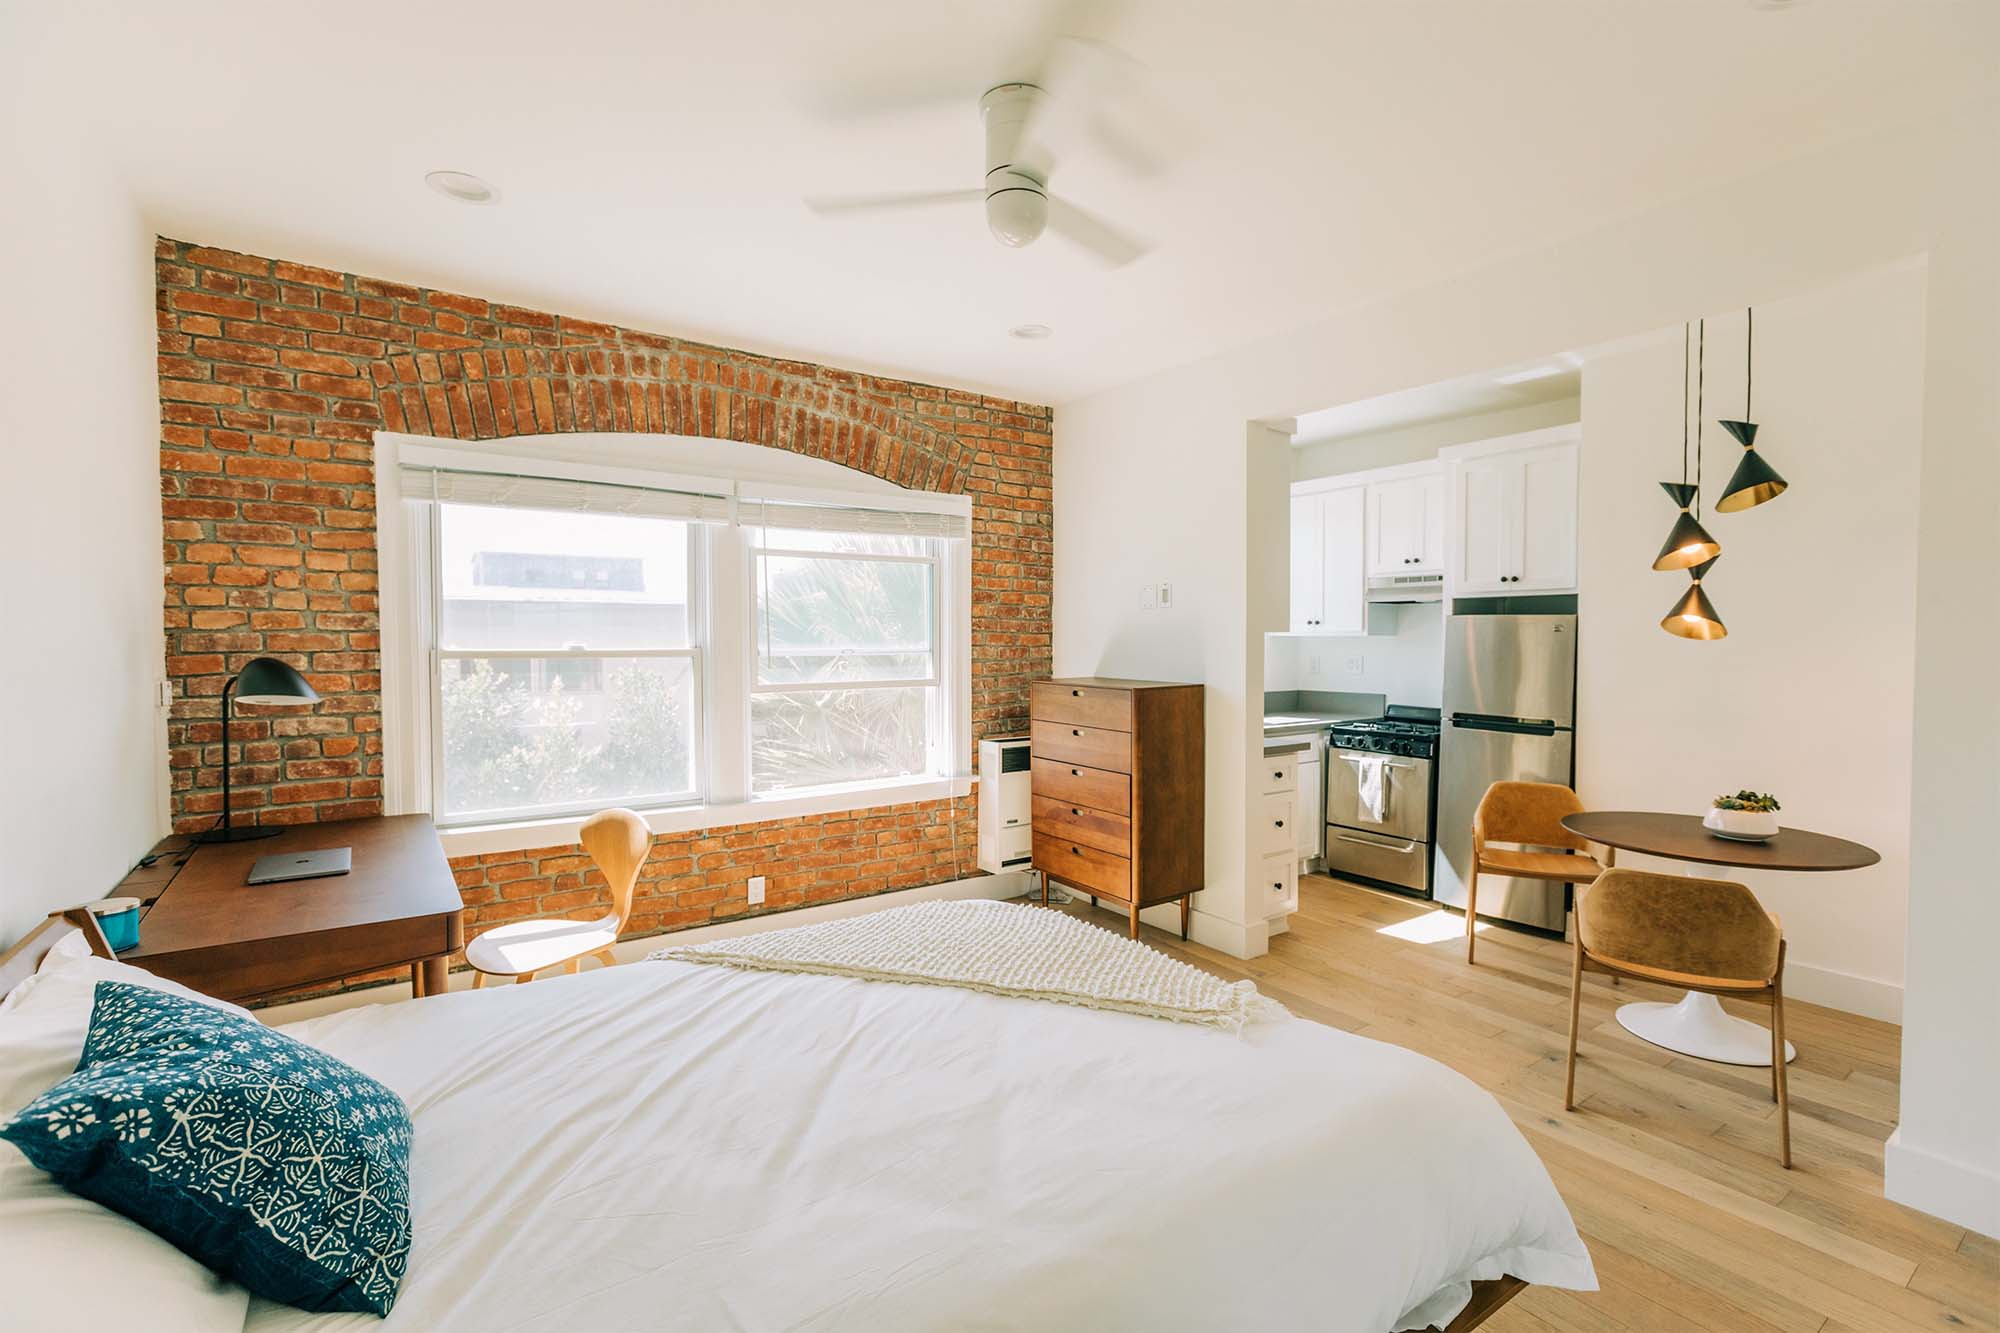 Photo of an airy apartment with a bed, desk, and chair. In the back you can see the entrance to a kitchen.